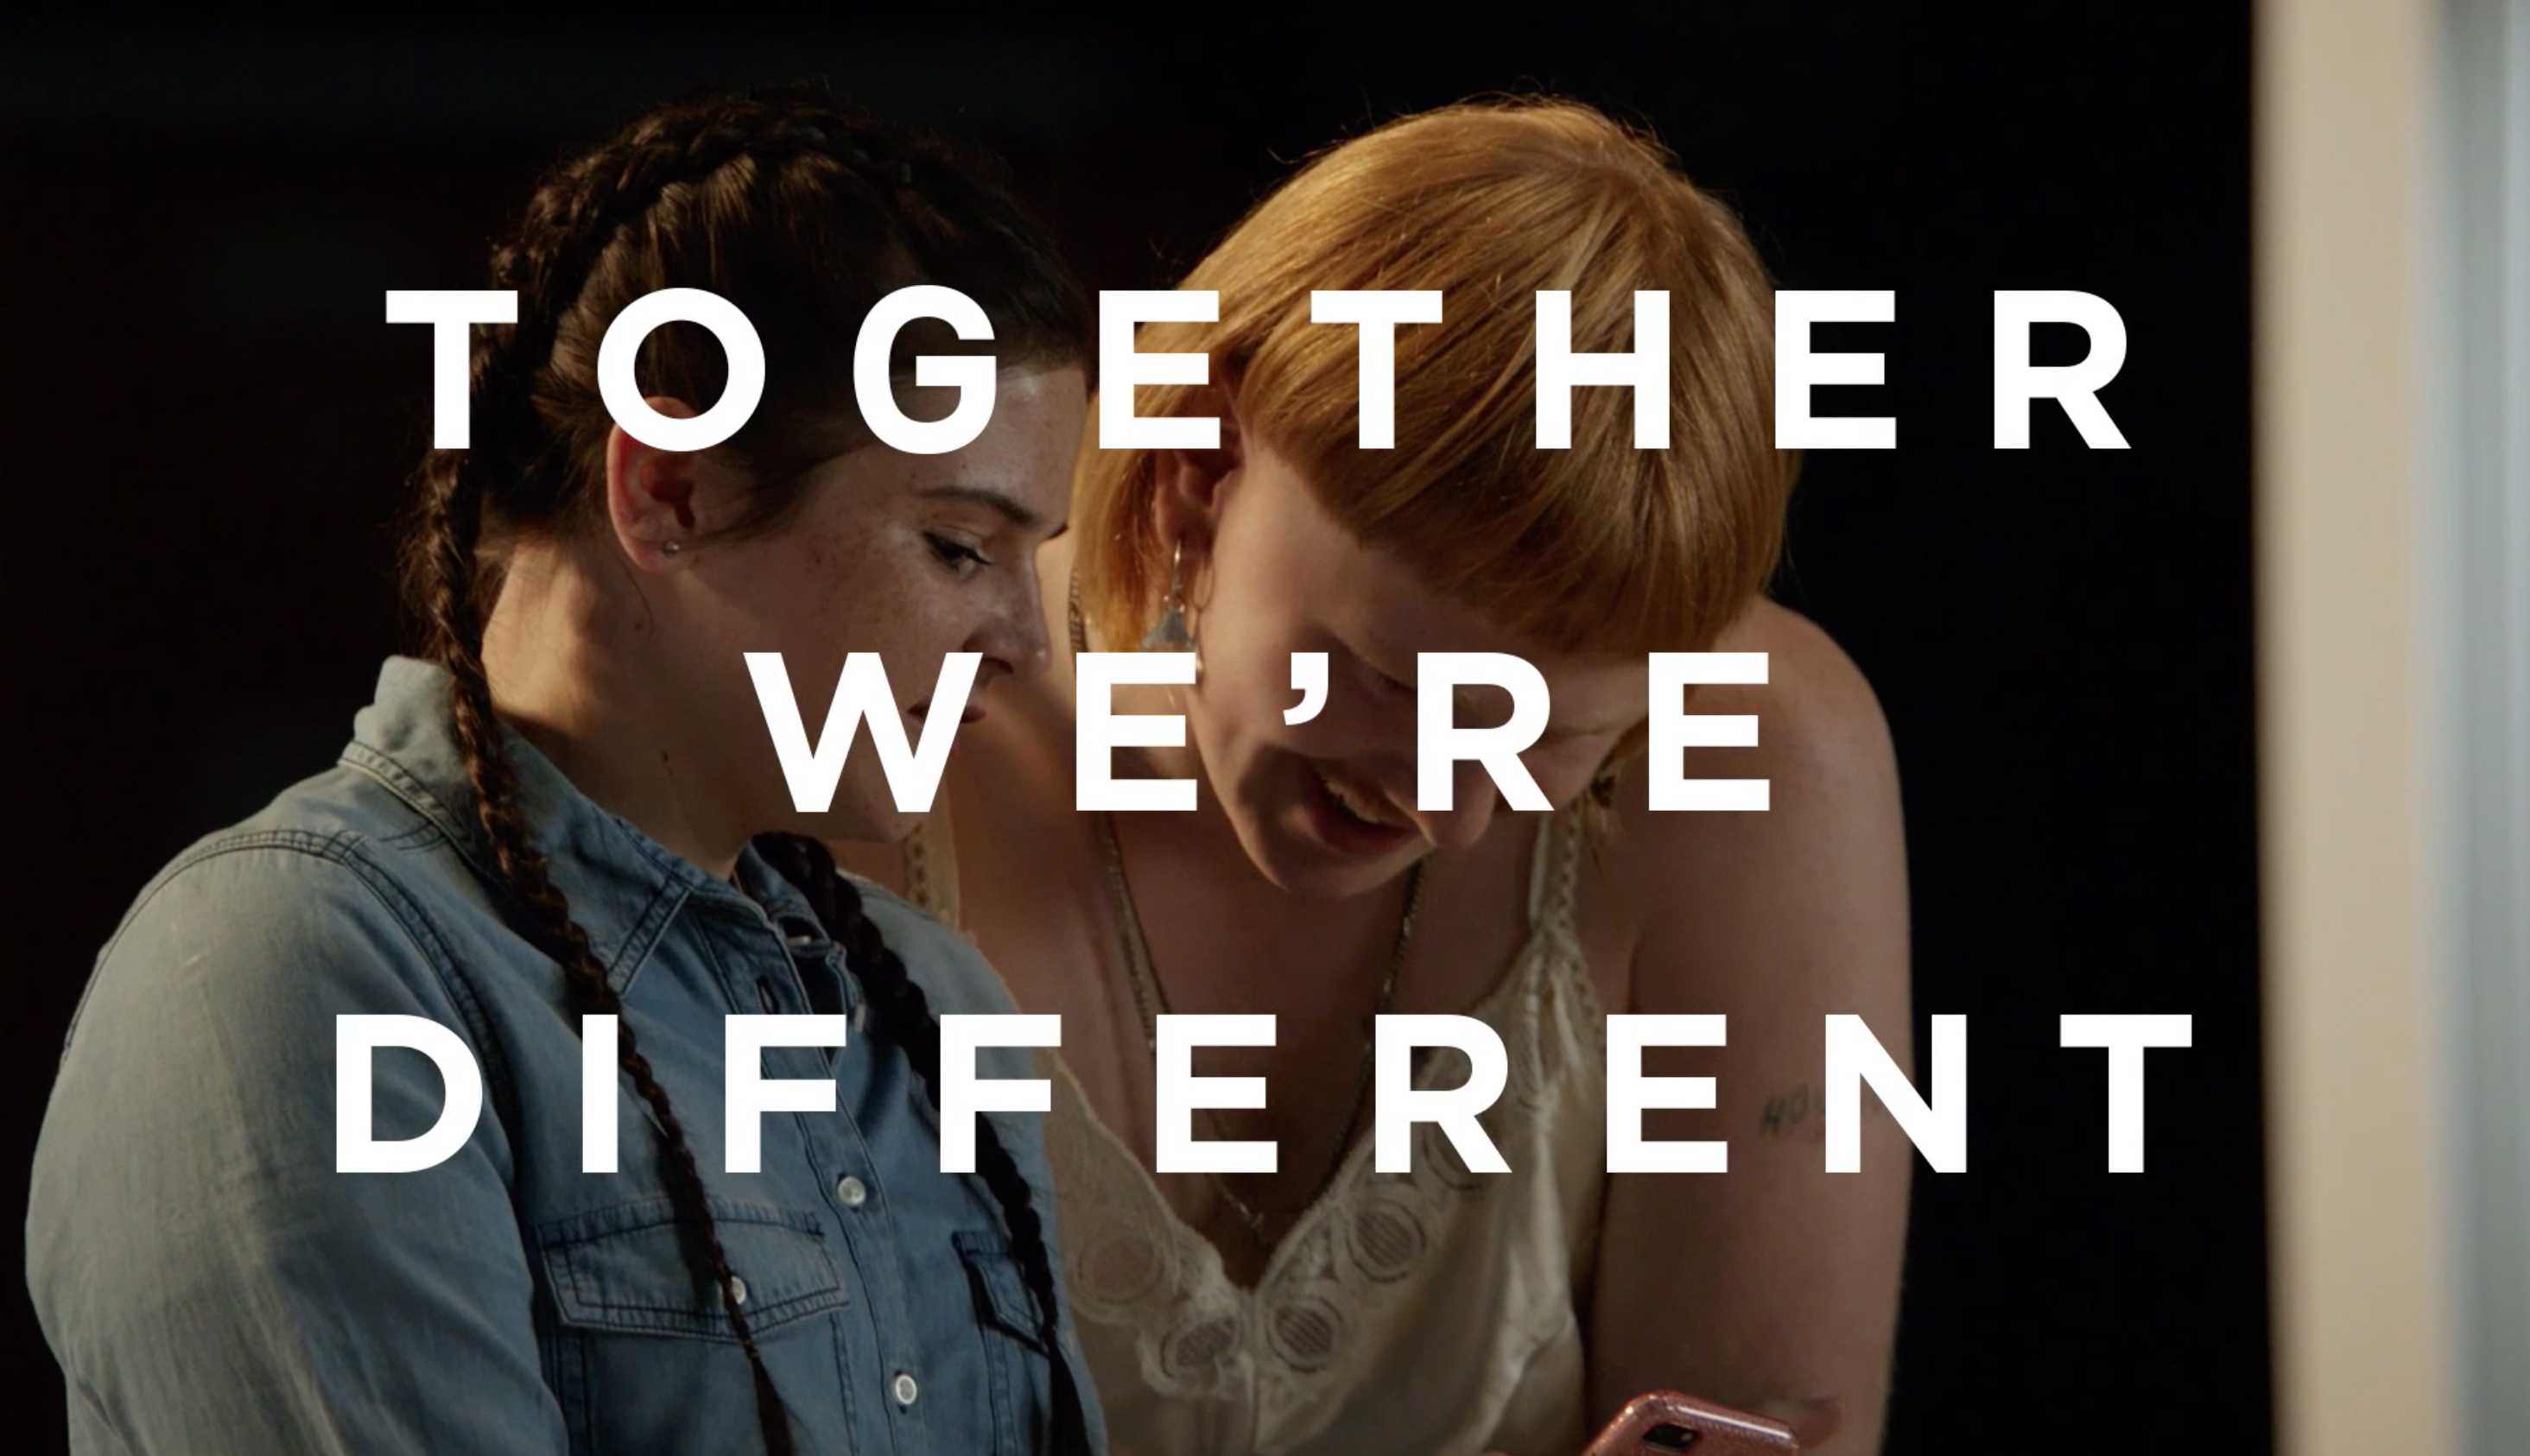 Belong launches new 'Together We're Different' brand platform via Clemenger BBDO, Melbourne